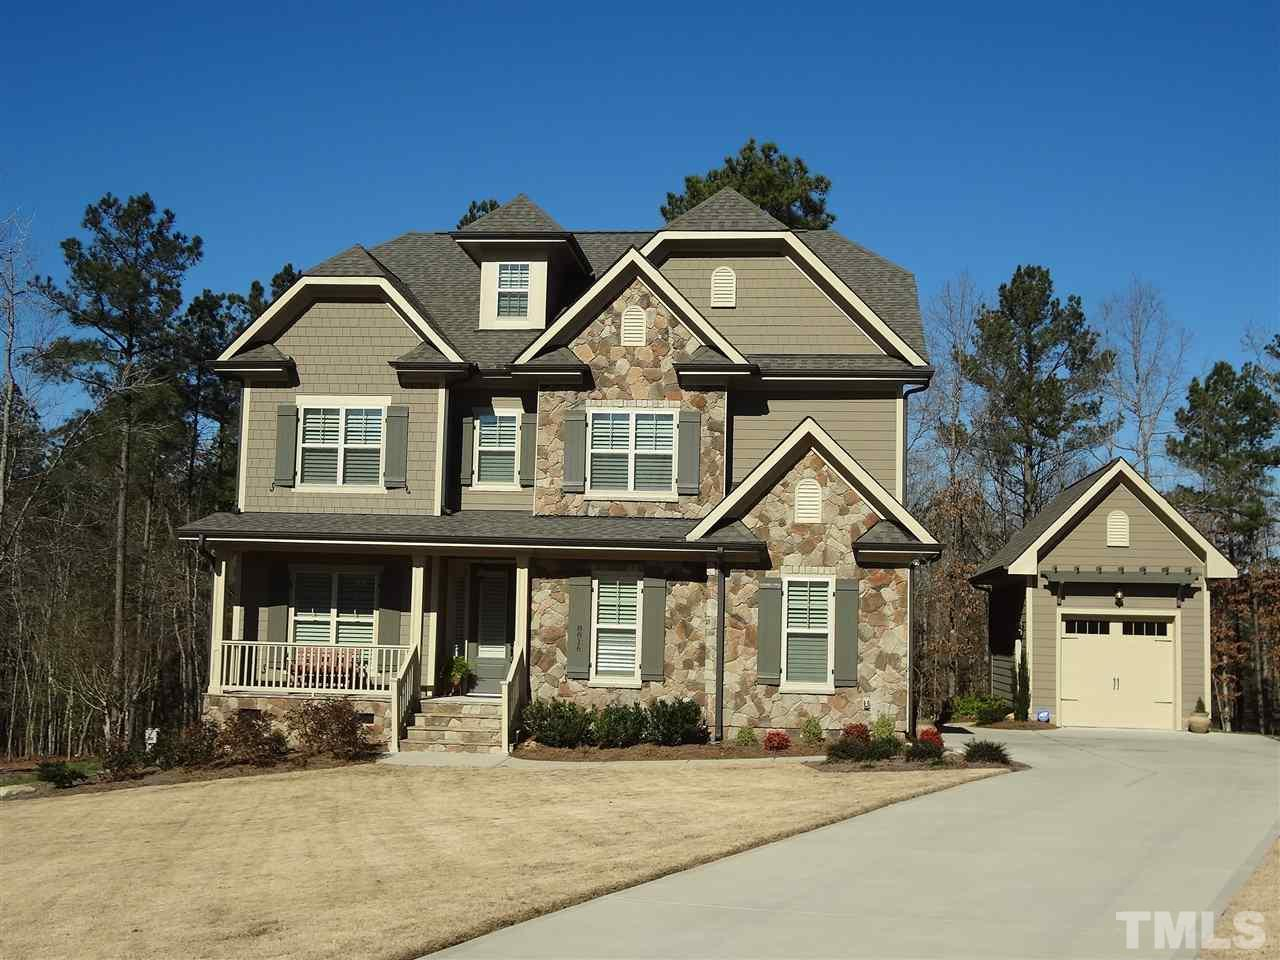 8816 Wormsloe Drive, Knightdale, NC 27545